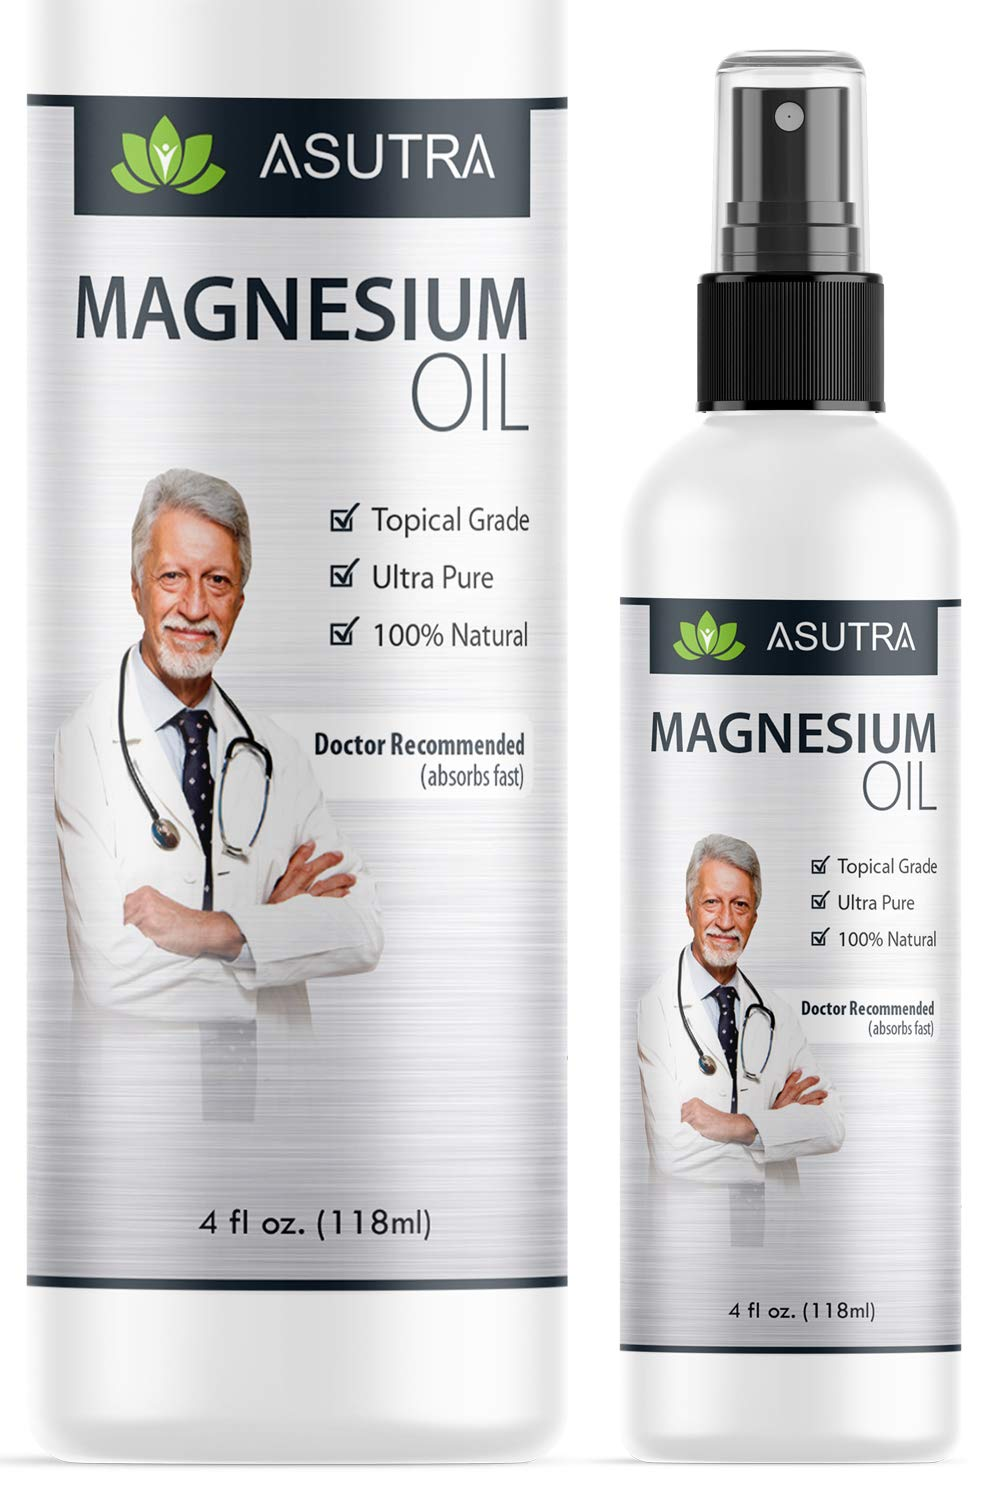 ASUTRA Pure Zechstein Magnesium Oil Spray - LESS ITCH & LESS STING/Effective Rapid Transdermal Absorption + FREE Magnesium E-Book, 1 4oz bottle